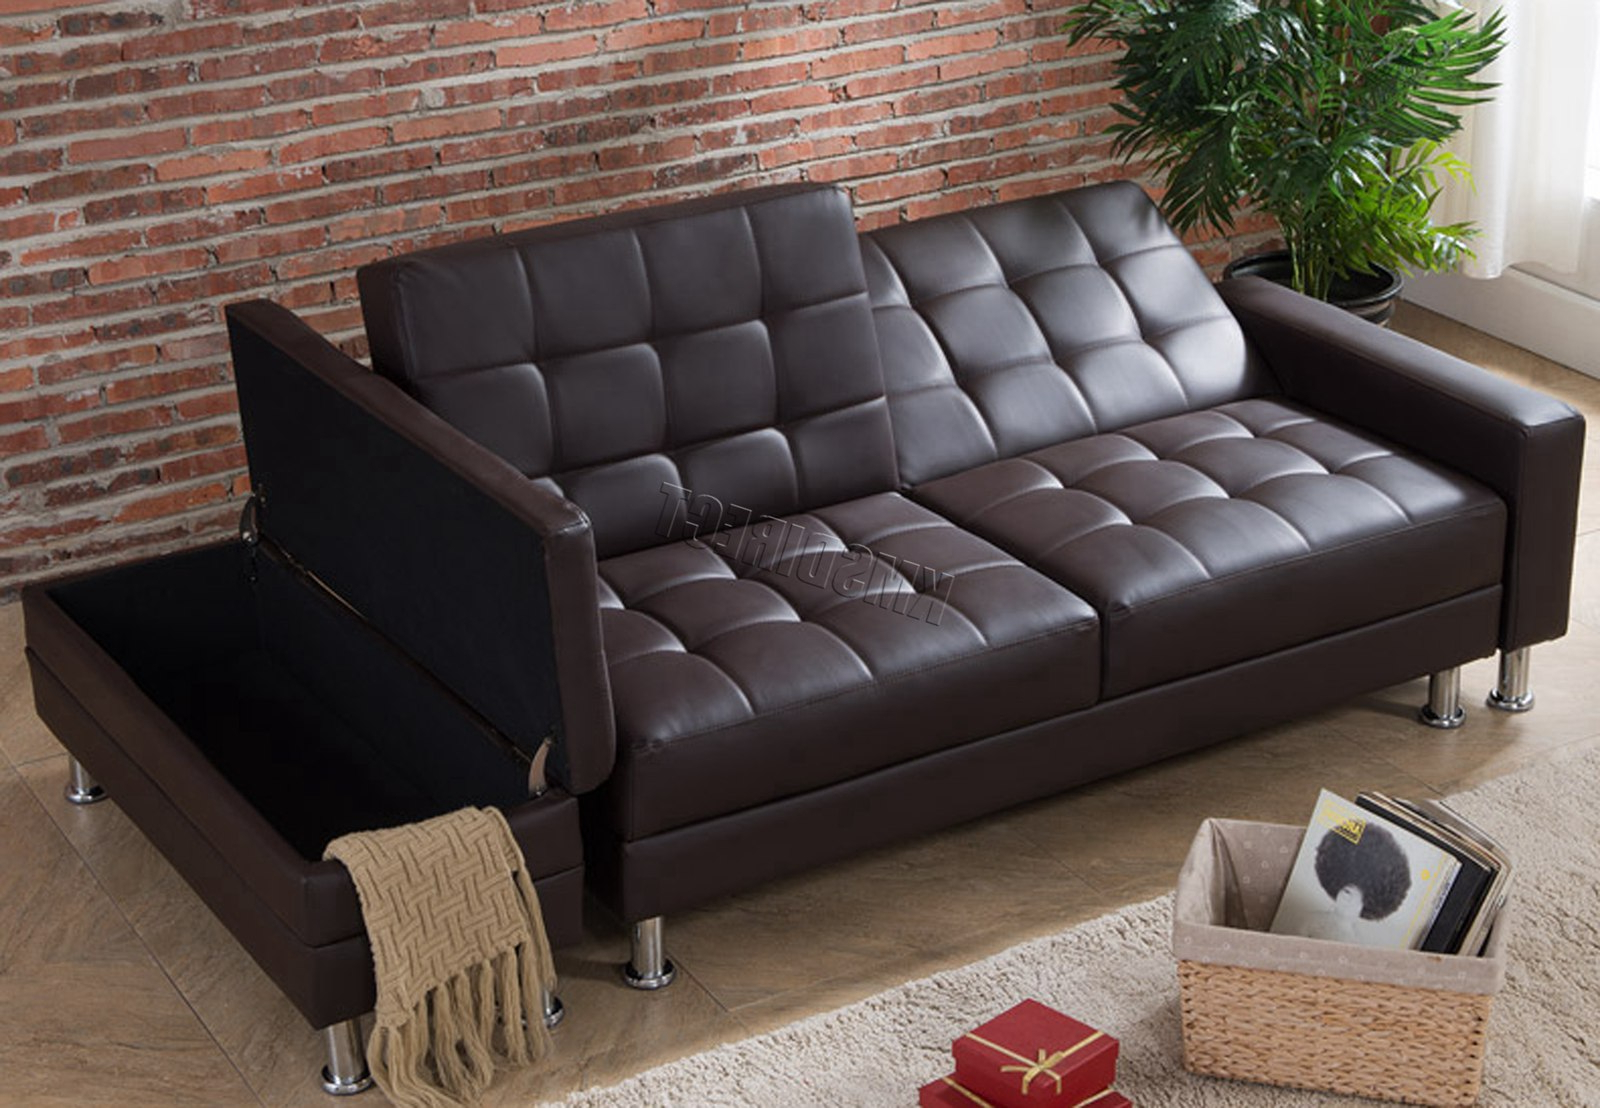 Well Known Westwood Pu Sofa Bed With Storage 3 Seater Guest Sleeper Throughout Liberty Sectional Futon Sofas With Storage (View 1 of 25)